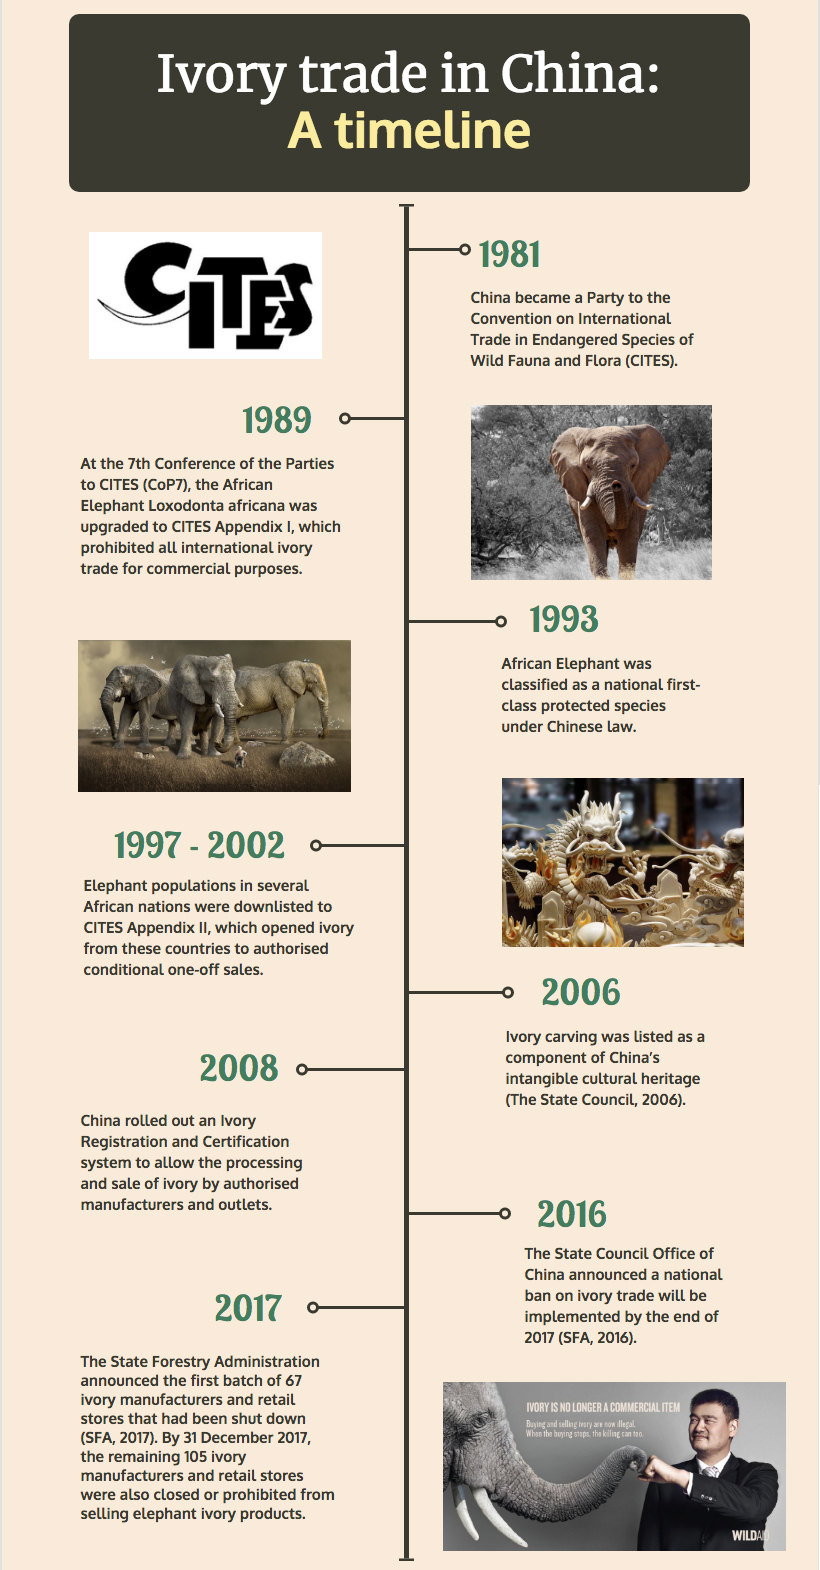 Ivory trade in China: A timeline